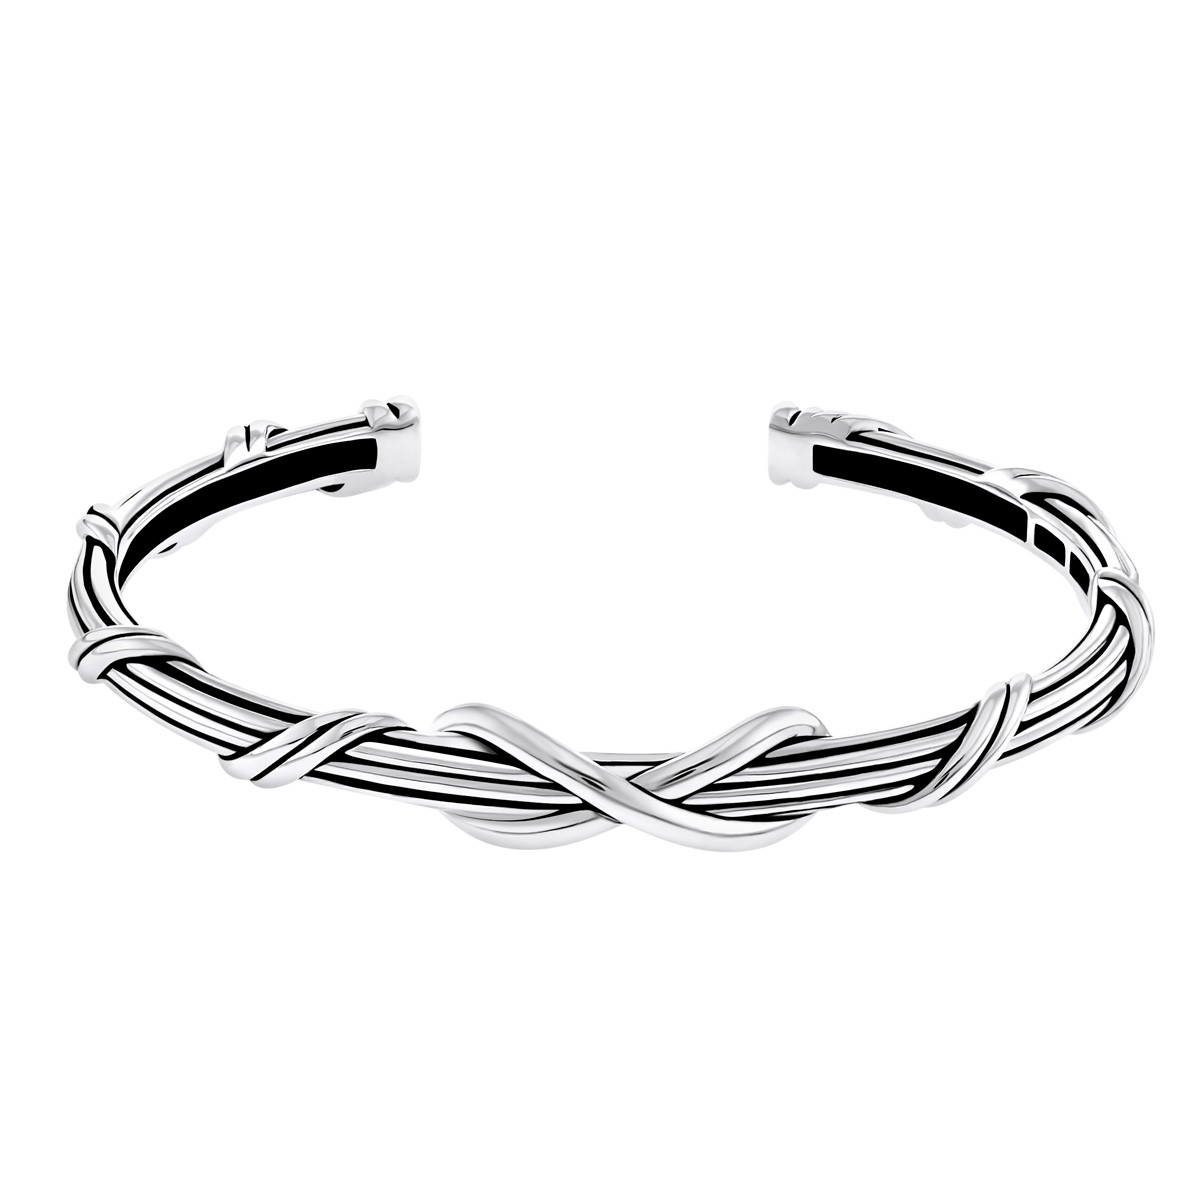 Signature Classic Infinity Cuff in sterling silver